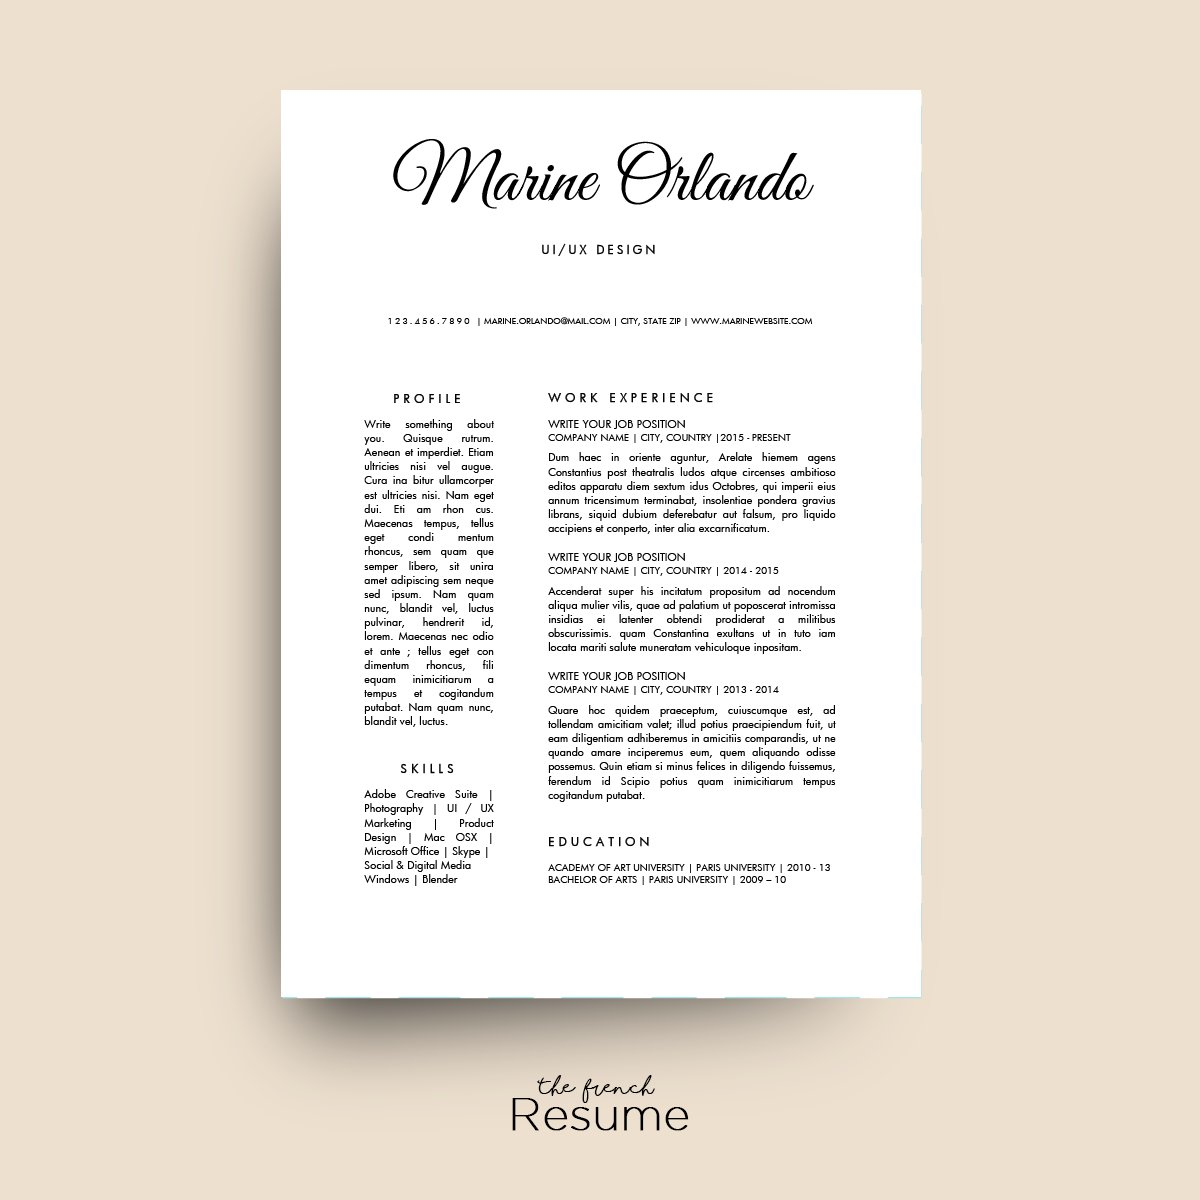 Writer Resume Simple Resume Template Ms Word  Resume Templates  Creative Market Languages On Resume Word with Ms Word Resume Templates Excel  Skills On A Resume Example Pdf